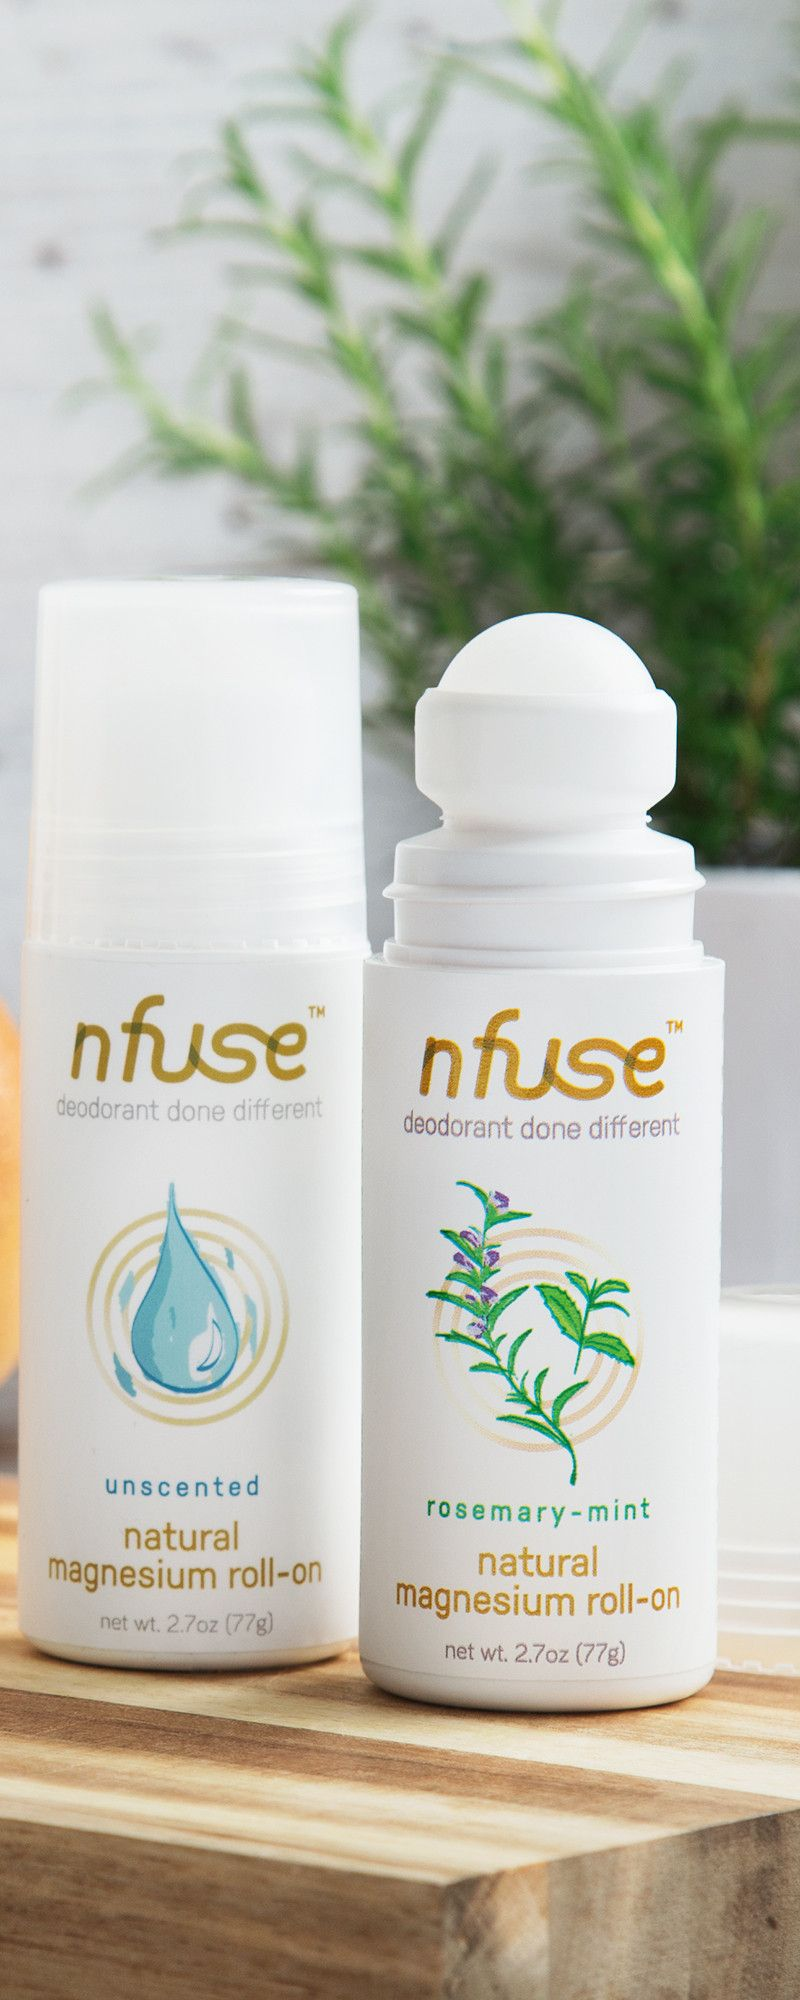 Nfuse AllNatural Magnesium Deodorant  Health and Wellness